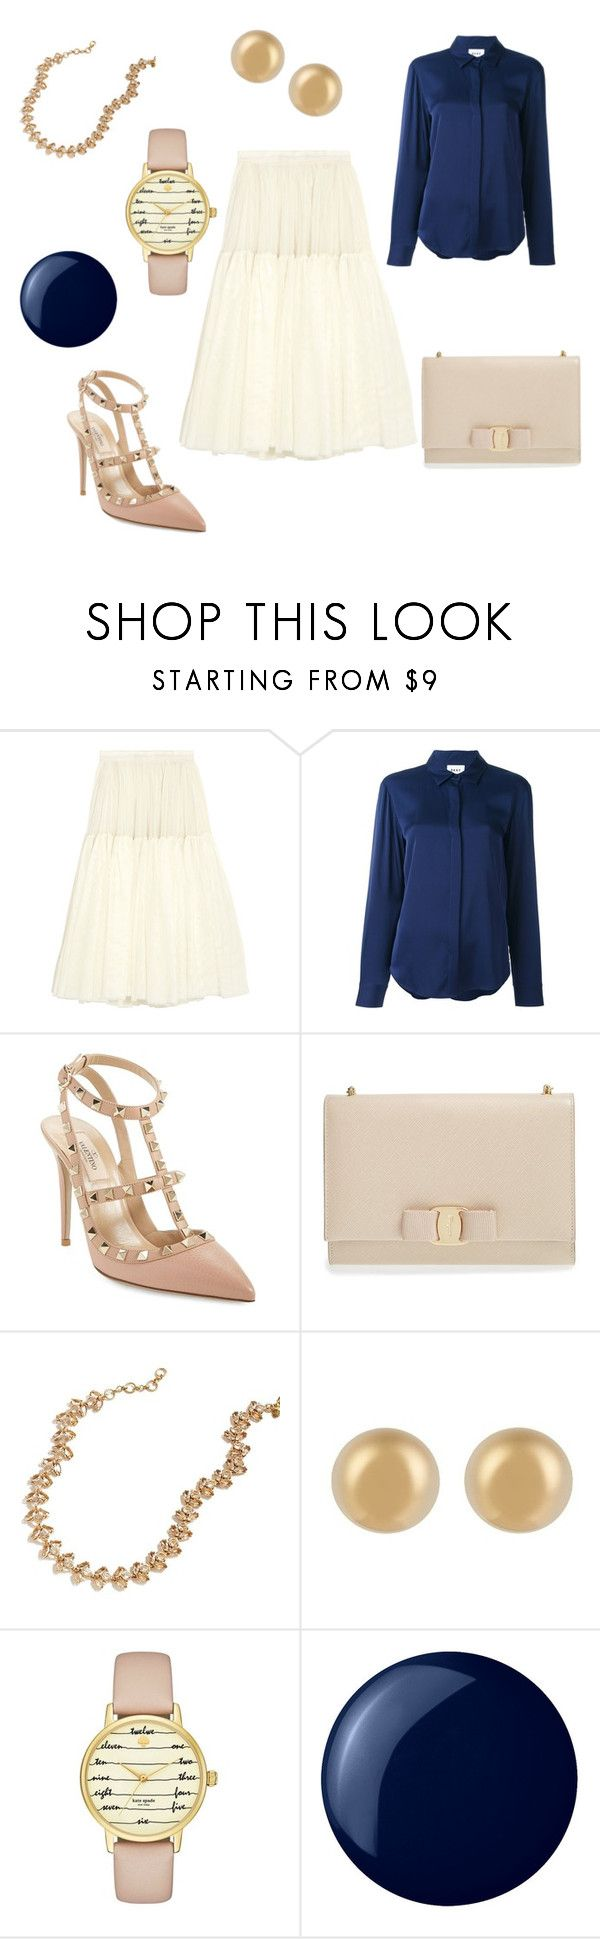 """Fashion Weekend: September 17th & September 18th"" by antiadamo on Polyvore featuring Needle & Thread, DKNY, Valentino, Salvatore Ferragamo, J.Crew, J.W. Anderson, Kate Spade and Essie"